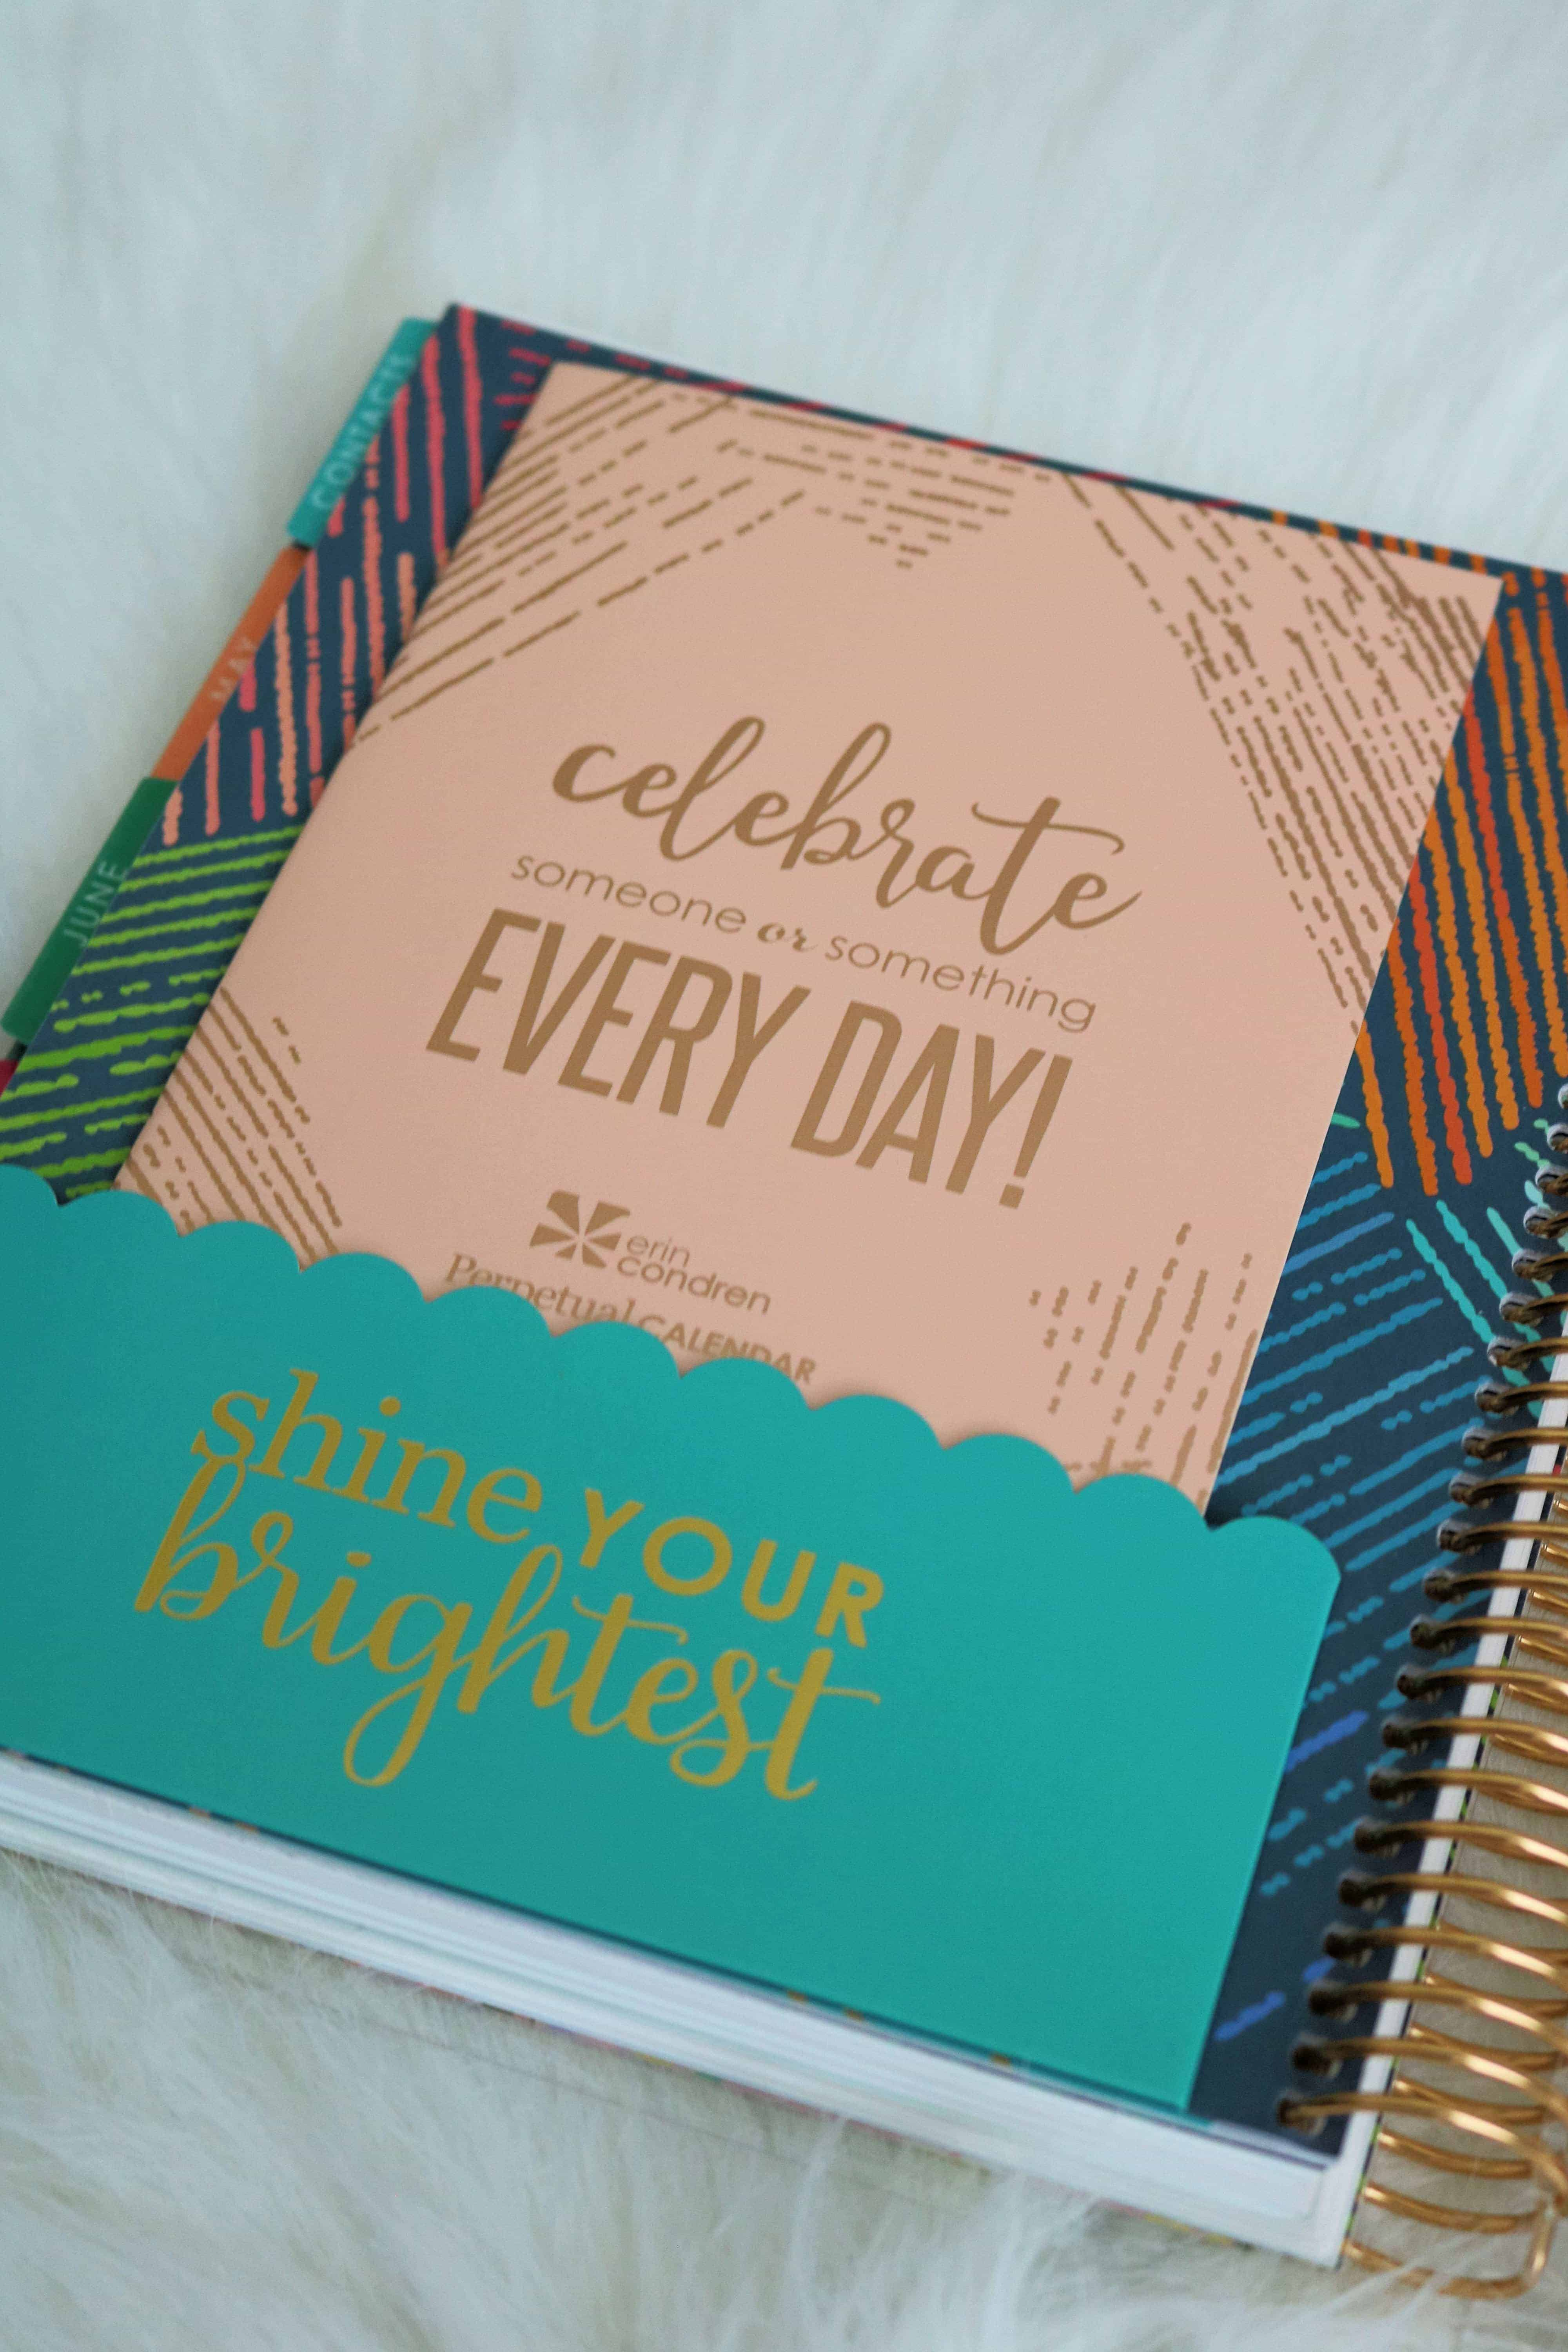 Whether you're a busy mom, blogger, college student, or just someone looking to be more organized, the Erin Condren Life Planner is the best planner around! Check out my full review of the 2018-2019 Life Planner and how you can fully customize it for your needs.